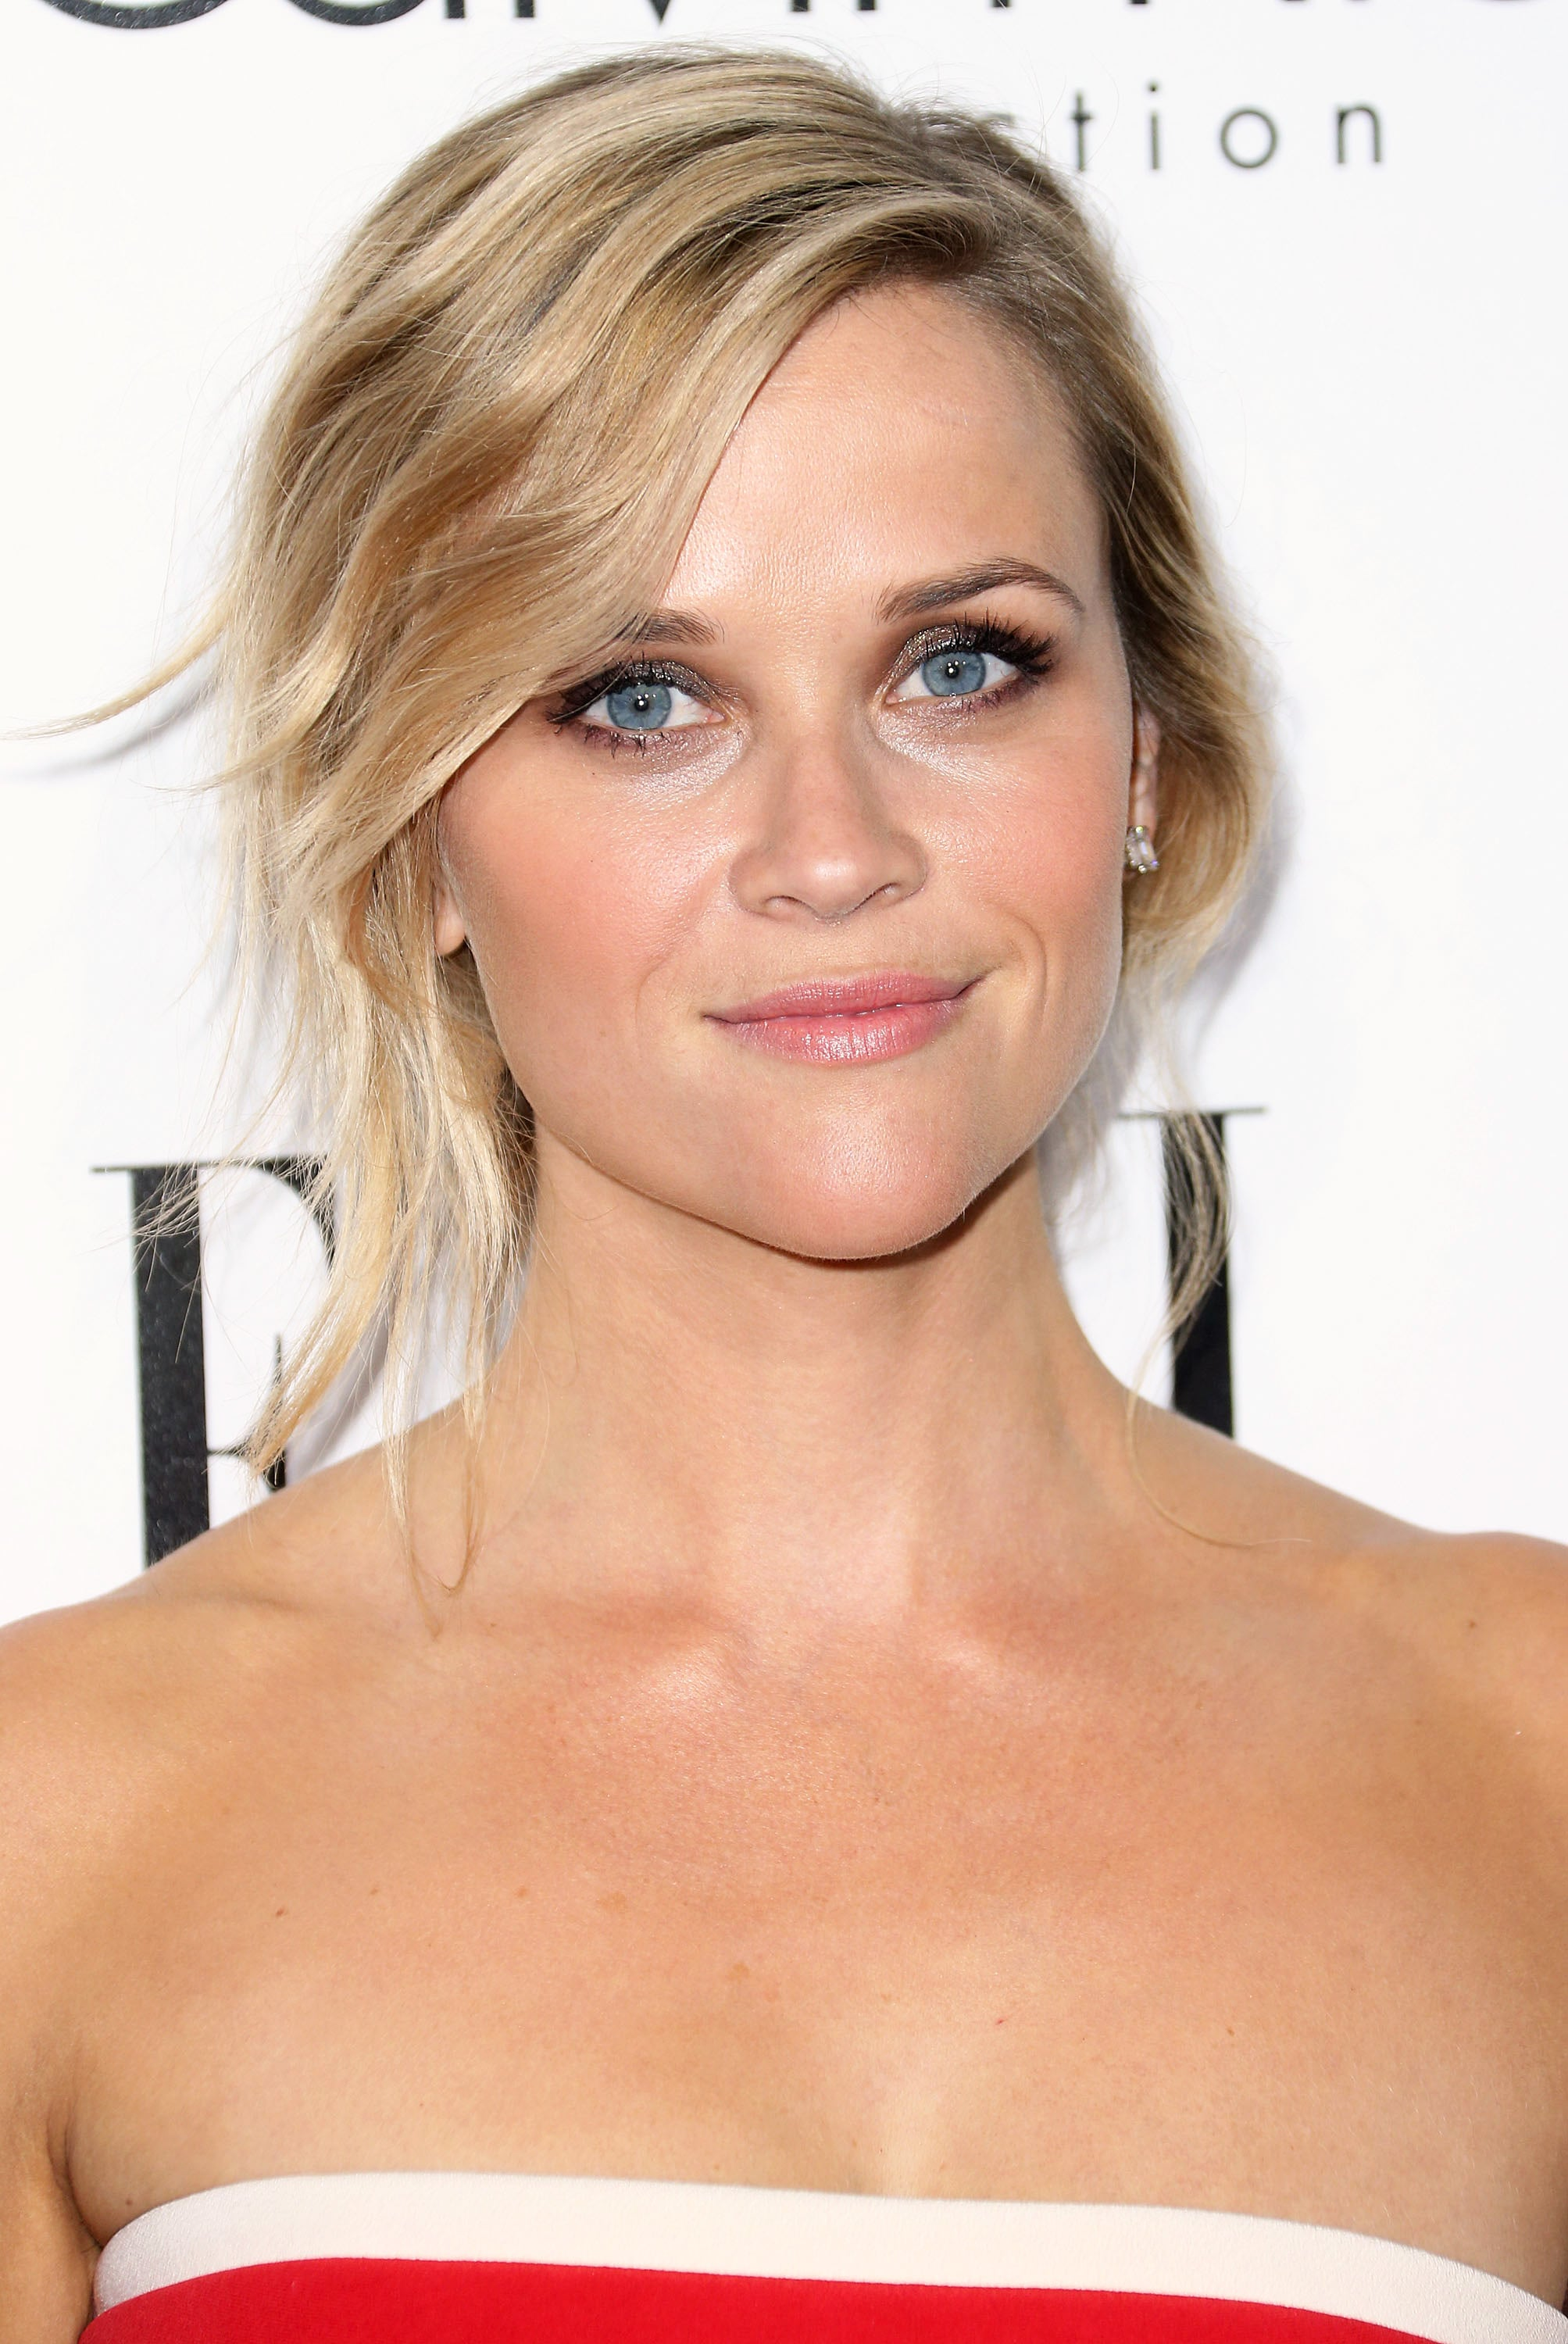 You can't go wrong with a classic, and Reese Witherspoon's tousled chignon was definitely a winning moment for the actress. She kept her makeup look simple with just a touch of metallic shadow and pink lipstick, Lancome's Rouge in Love in Jolis Matins ($26).